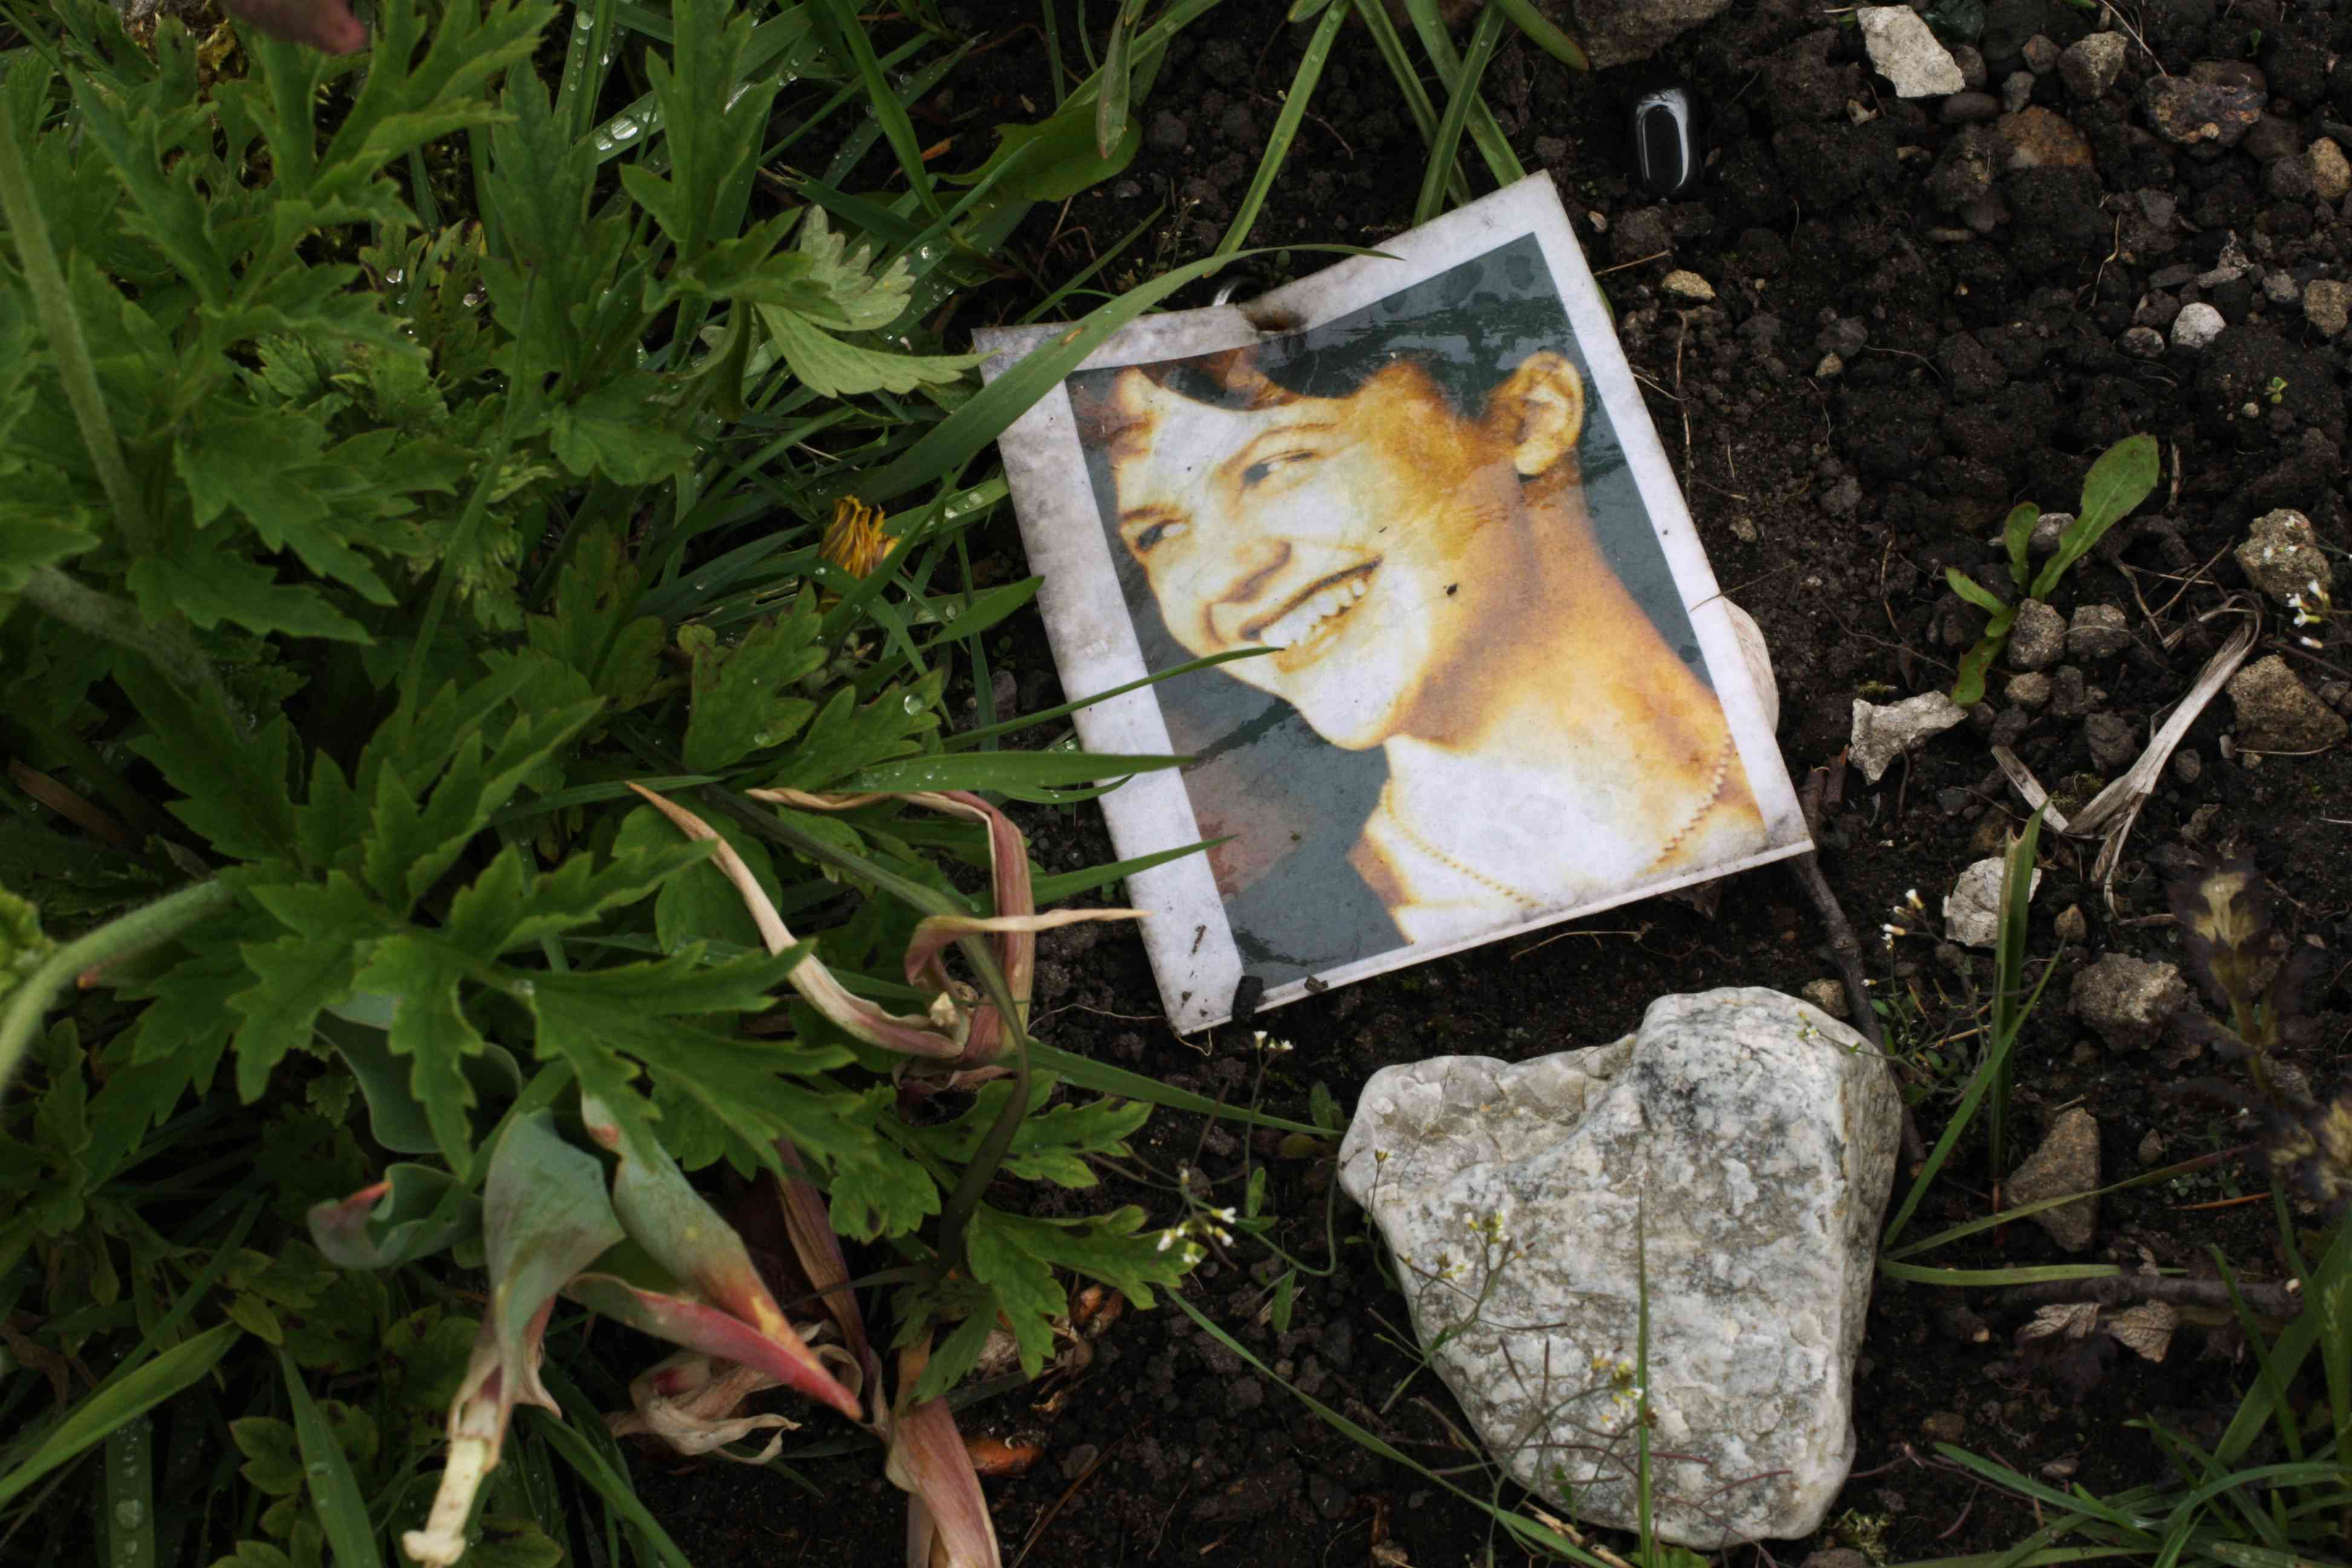 Picture of Sylvia Plath among the dirt and leaves